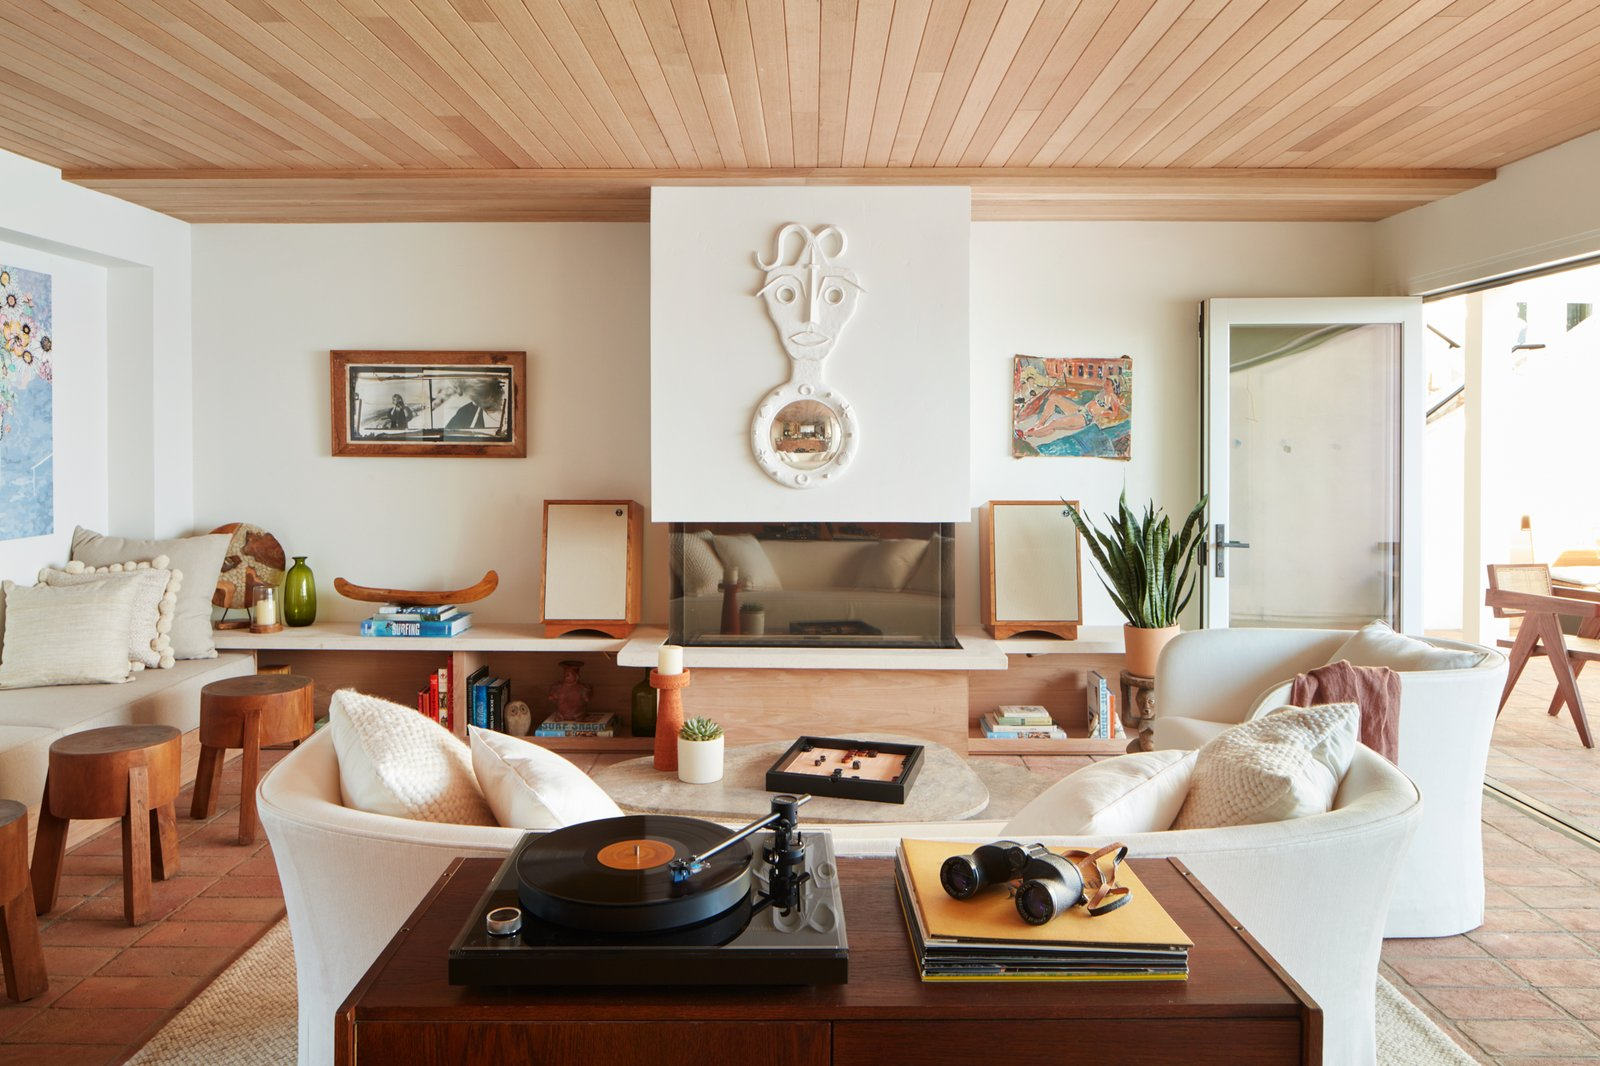 A New Southern California Hotel Serves Up Retro Beach Vibes